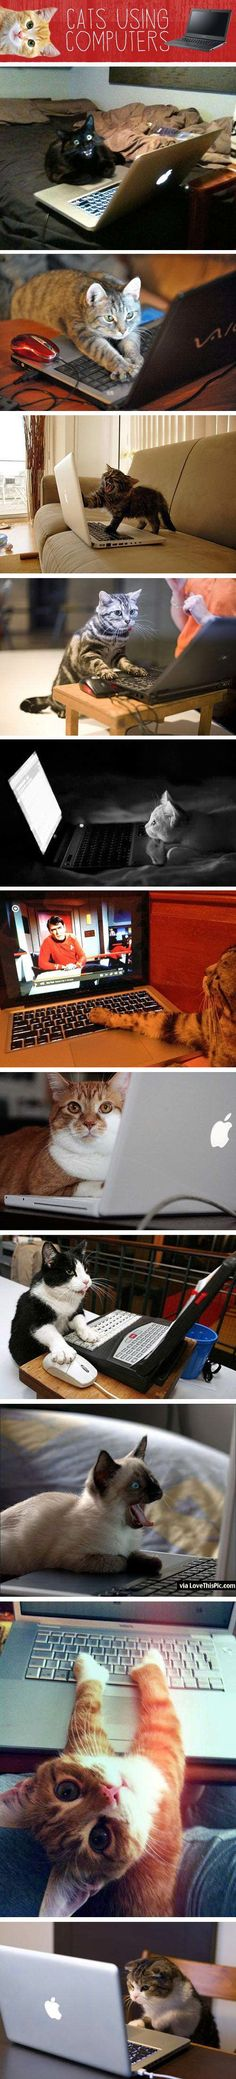 Cats Using Computers cute animals cat cats adorable animal kittens pets kitten funny pictures funny animals funny cats